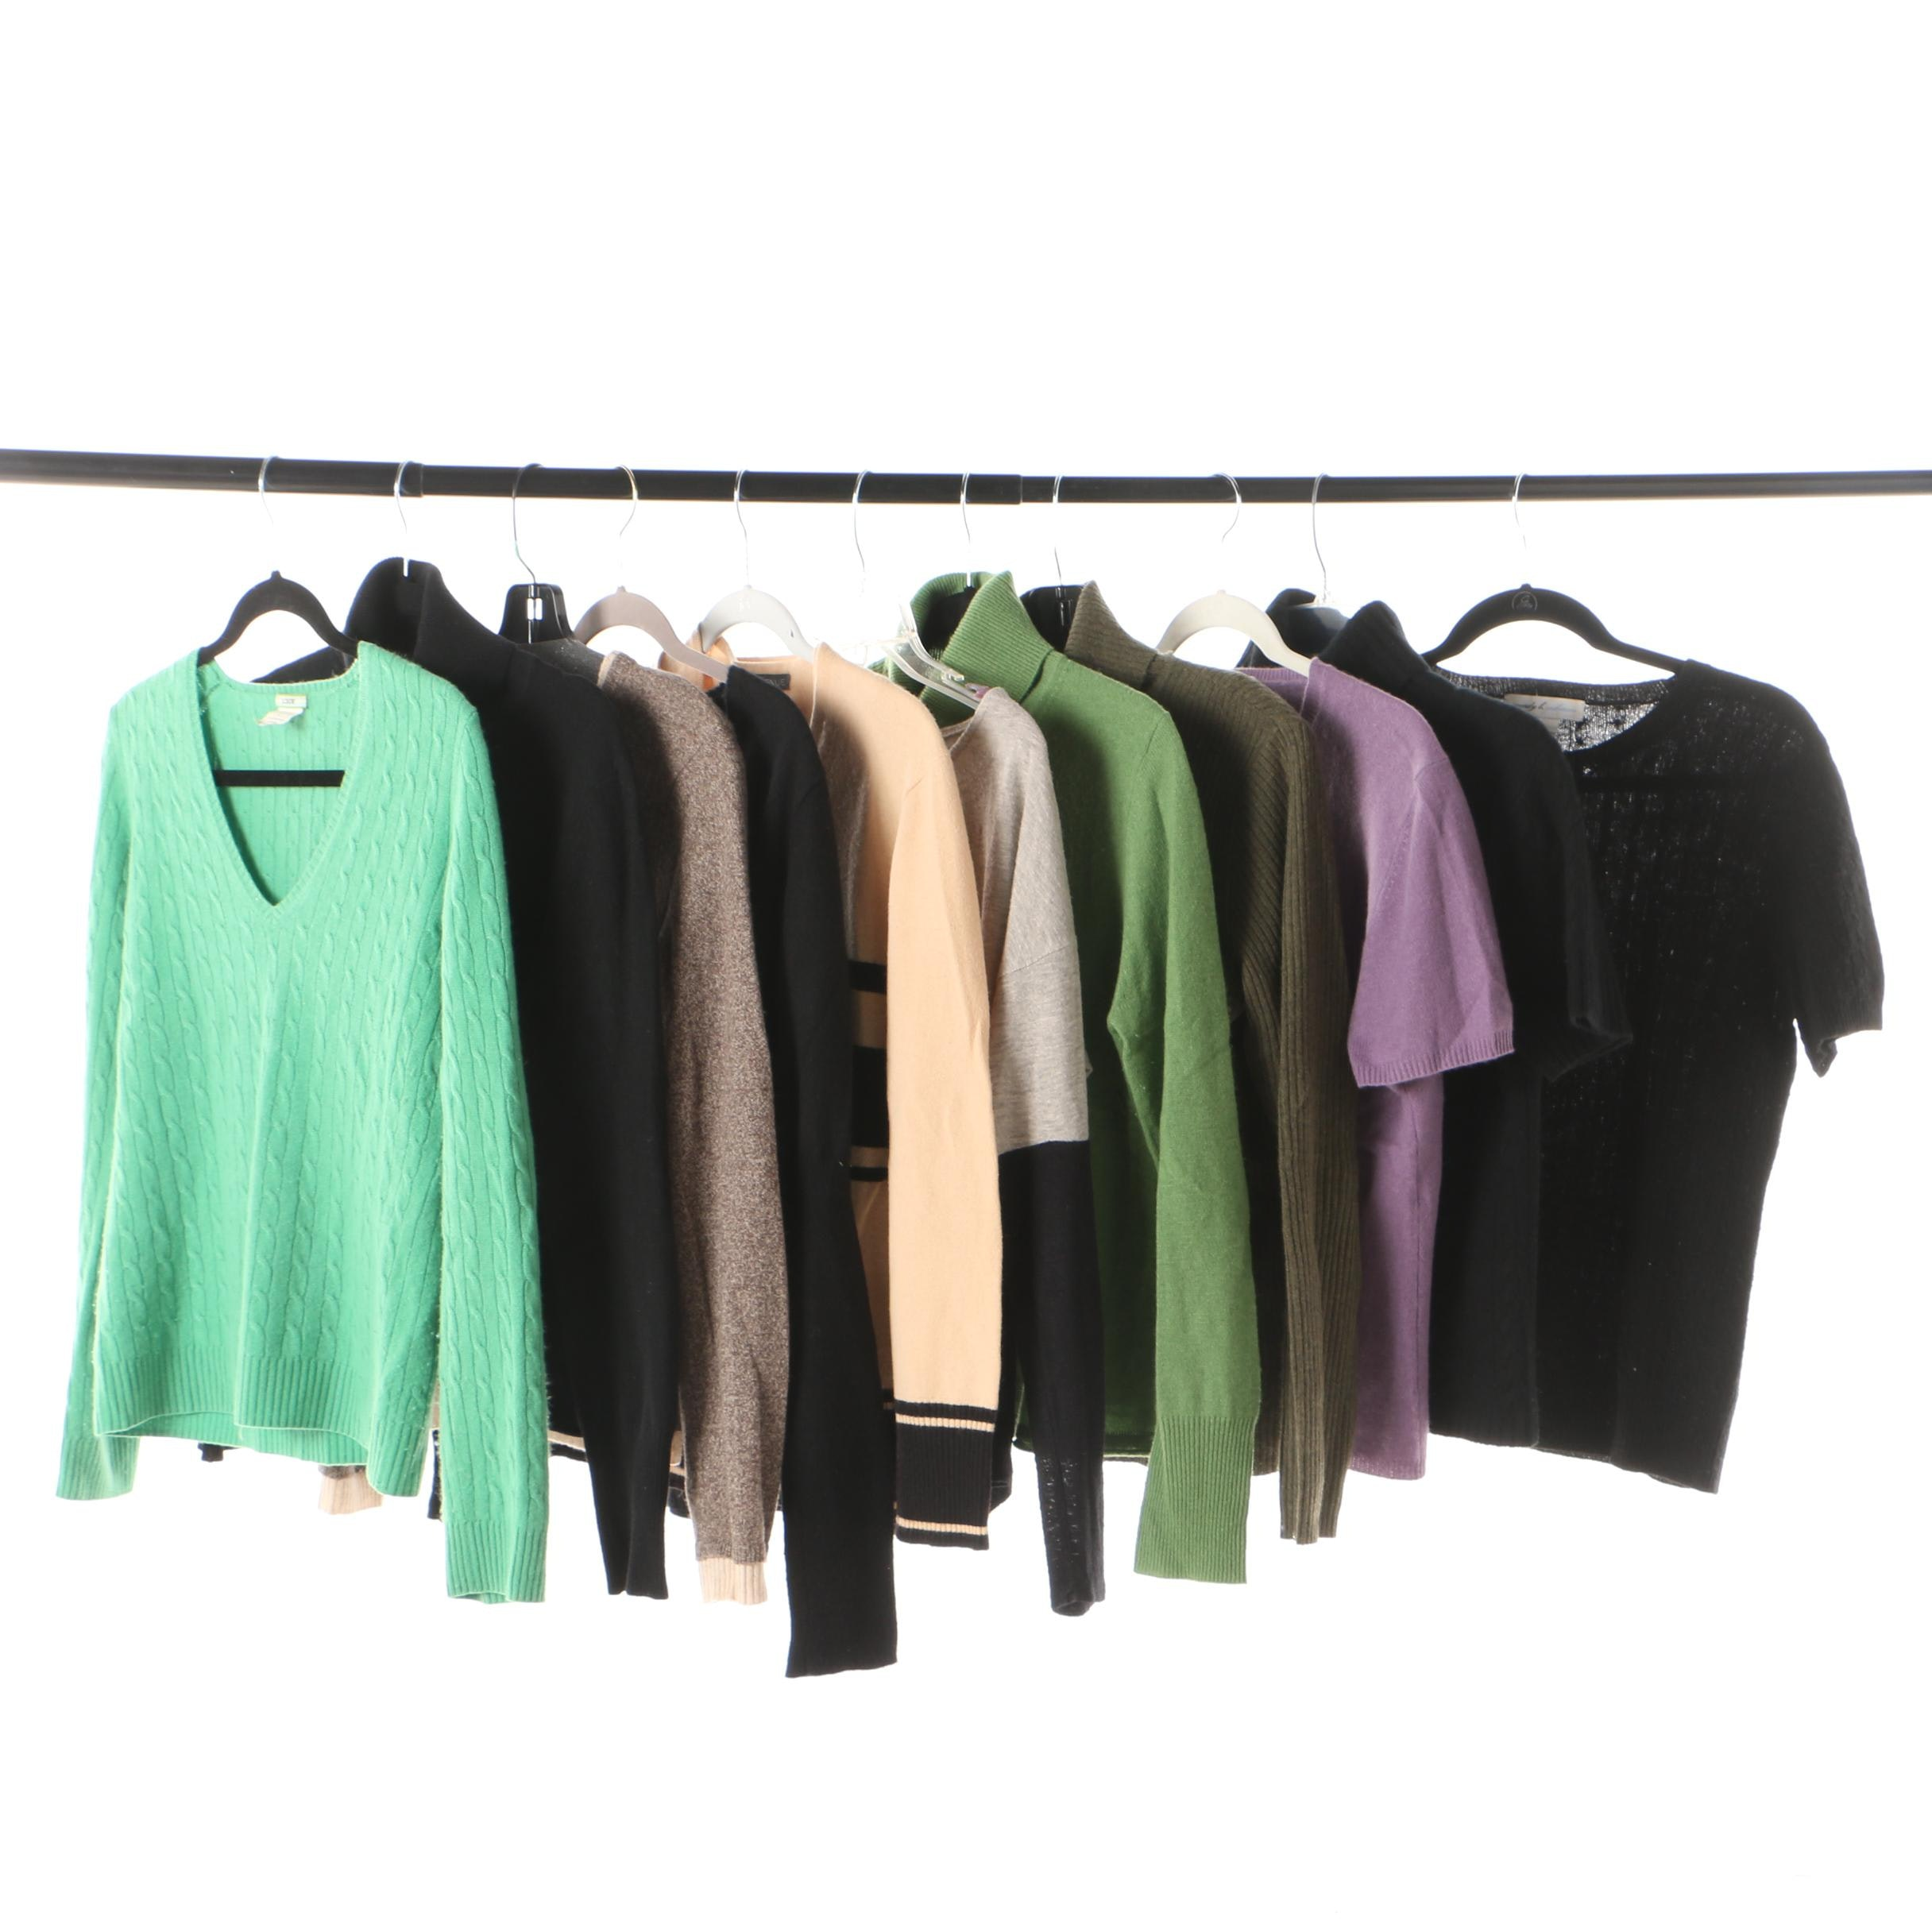 Women's Cashmere Sweaters Including J. Crew and Saks Fifth Avenue